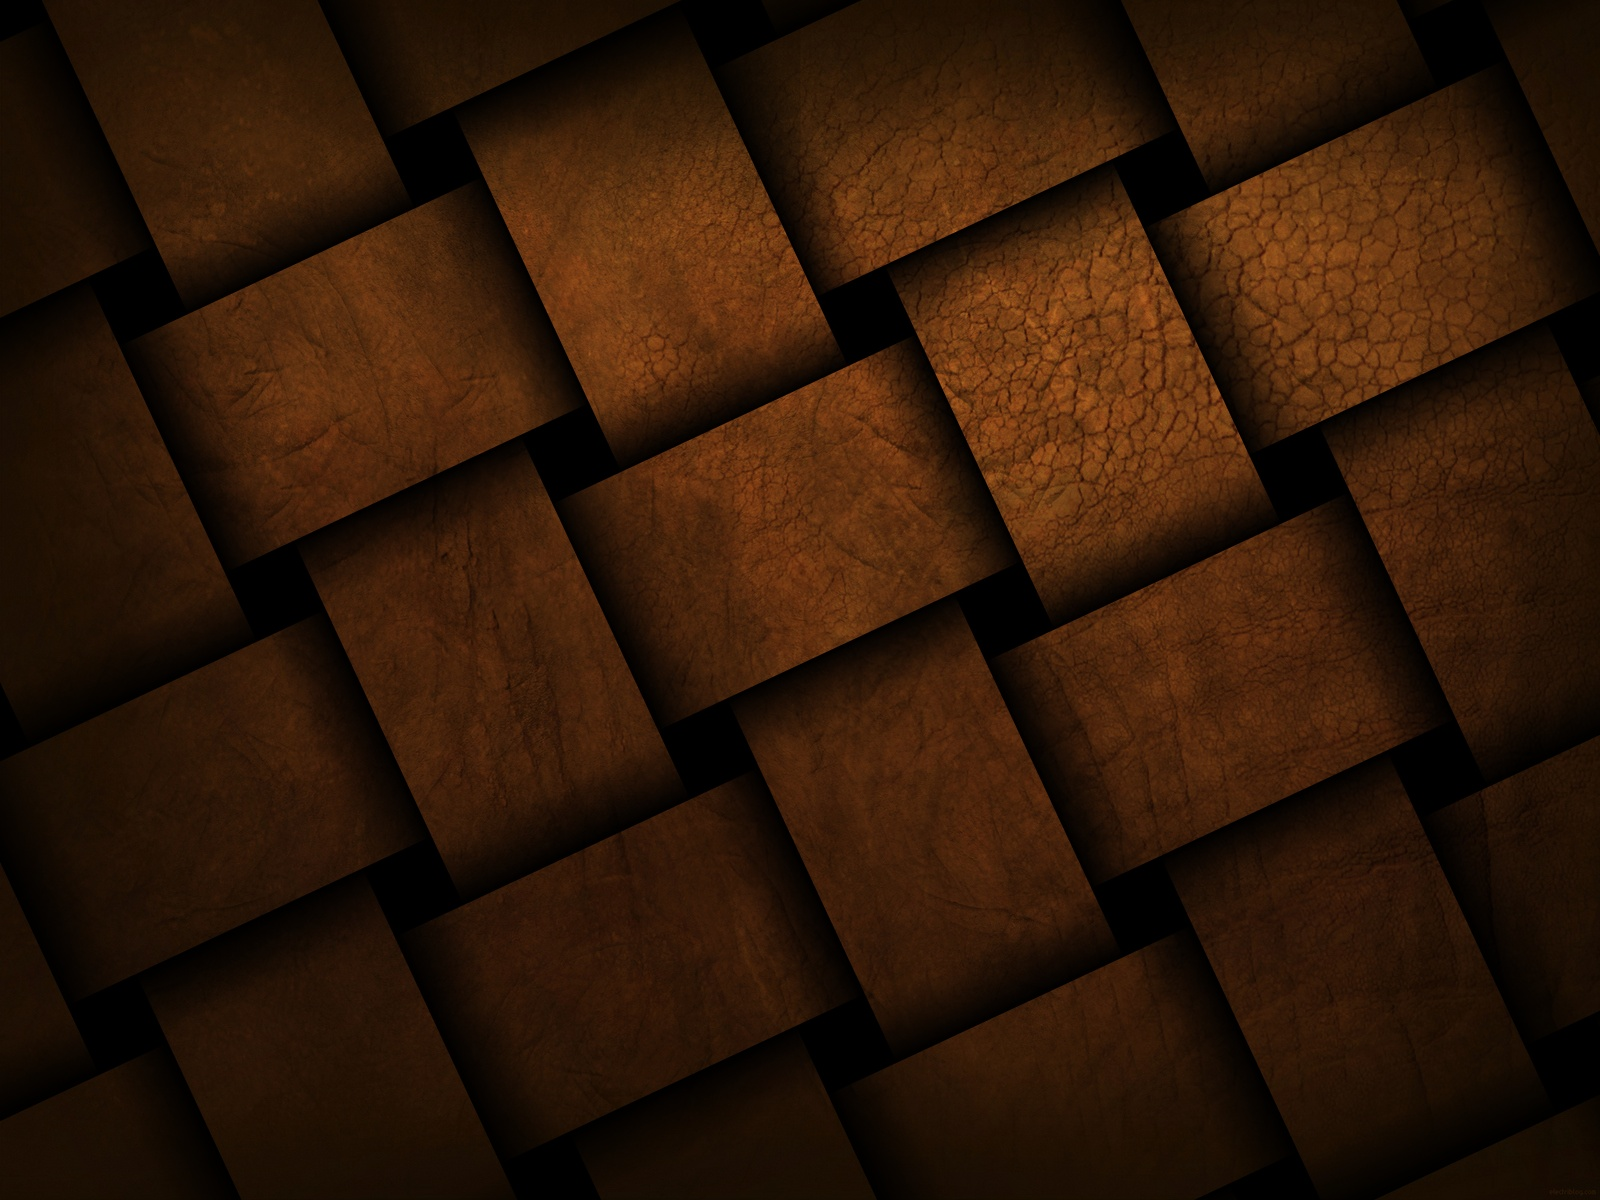 Brown Wallpapers Pictures Images HD Wallpapers Download Free Images Wallpaper [1000image.com]